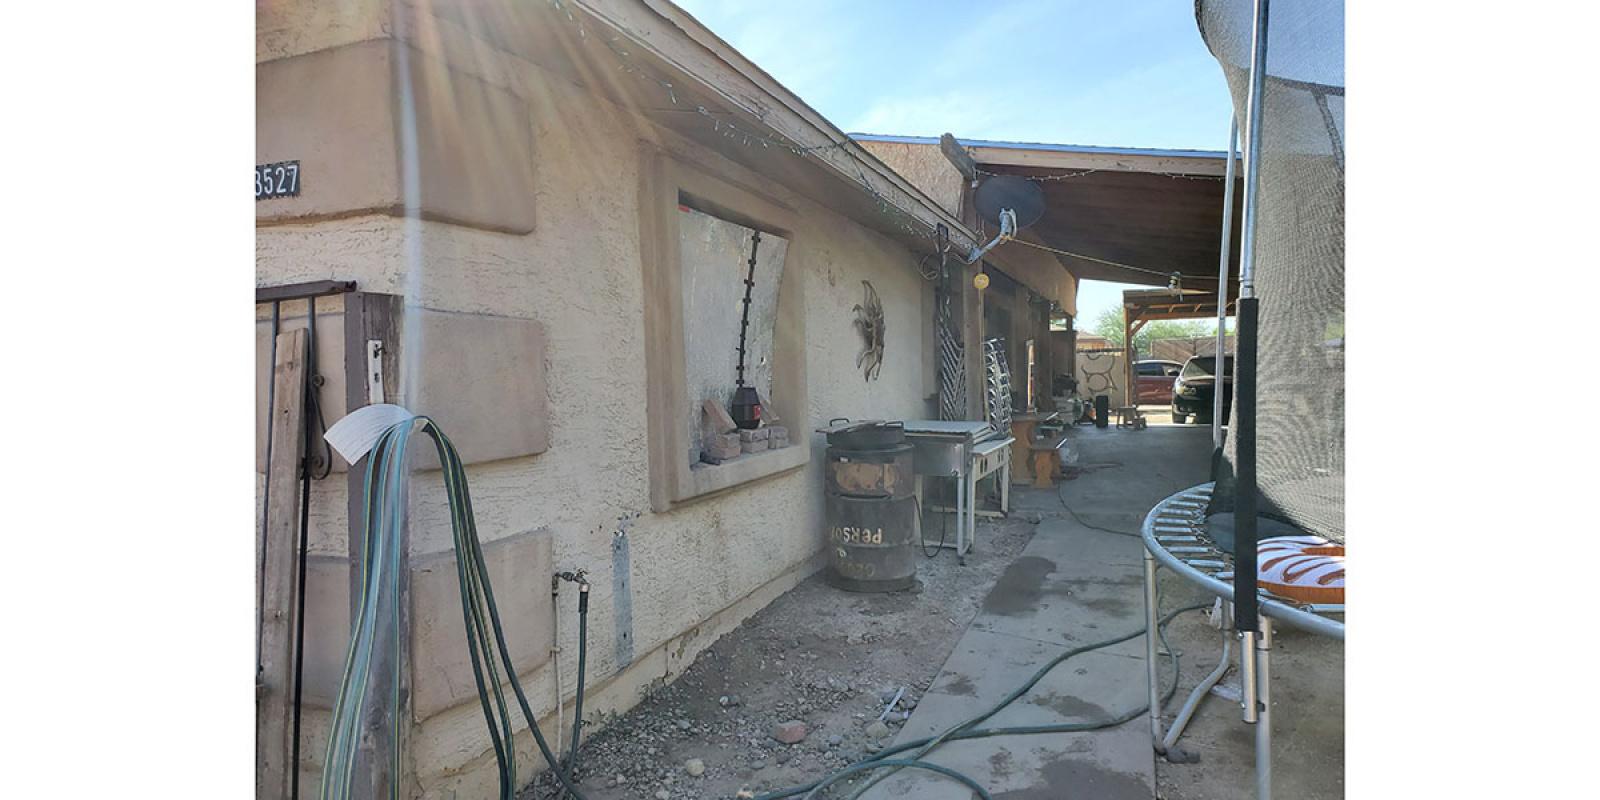 3527 W Hadley St, Phoenix, Arizona 85009, 4 Bedrooms Bedrooms, ,2 BathroomsBathrooms,SFR,Available,W Hadley St,1222